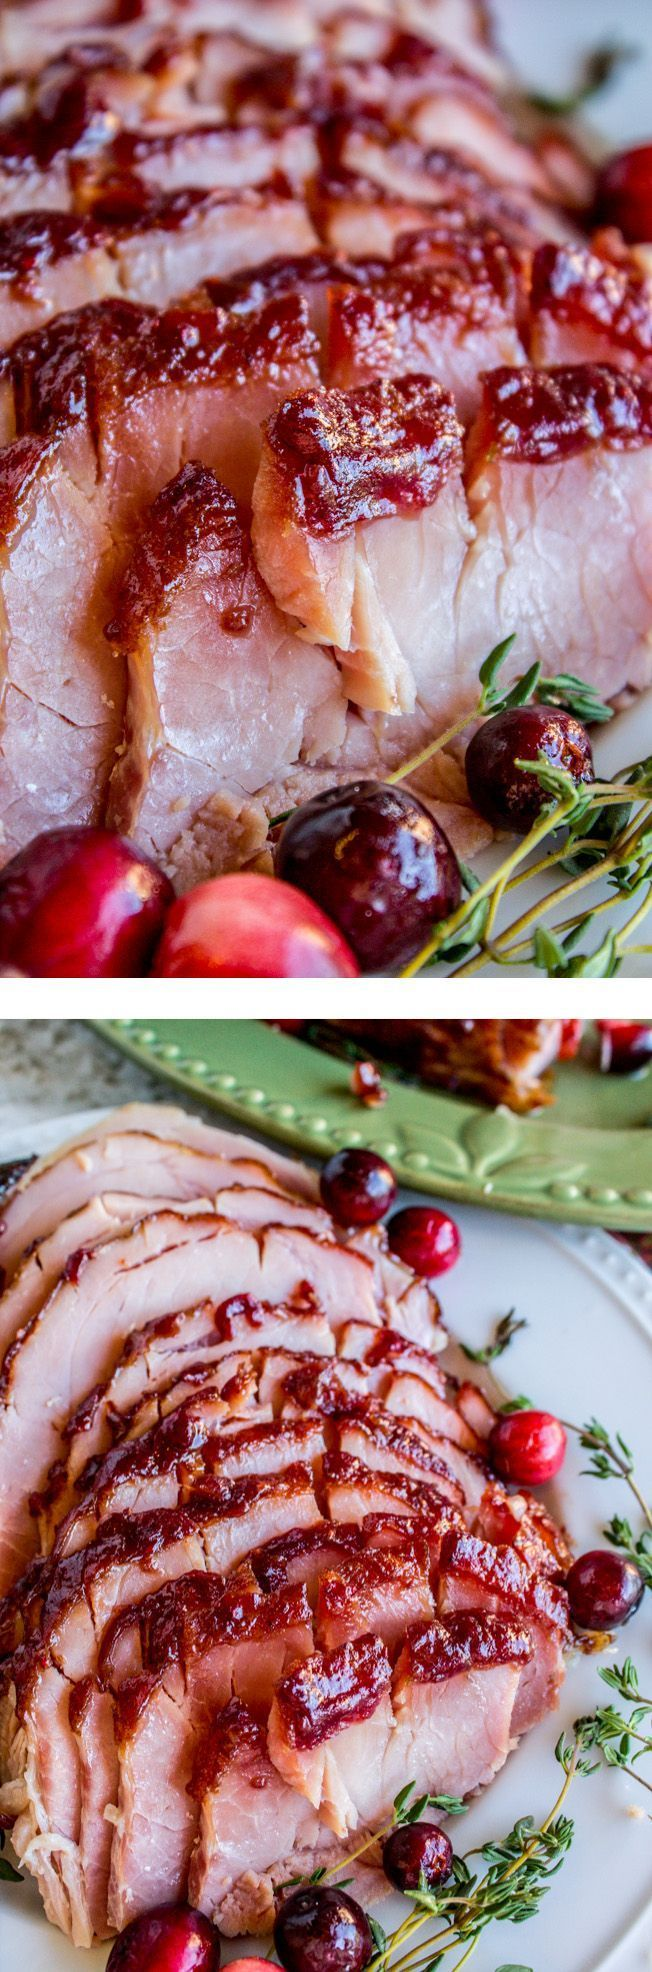 Oven roasted Cranberry Dijon Glazed Ham. This easy holiday recipe uses fresh cranberries, it's perfect for the holiday season! I love the zing that the dijon mustard adds too. It's super easy to throw together! Make it for Thanksgiving, Christmas dinner!